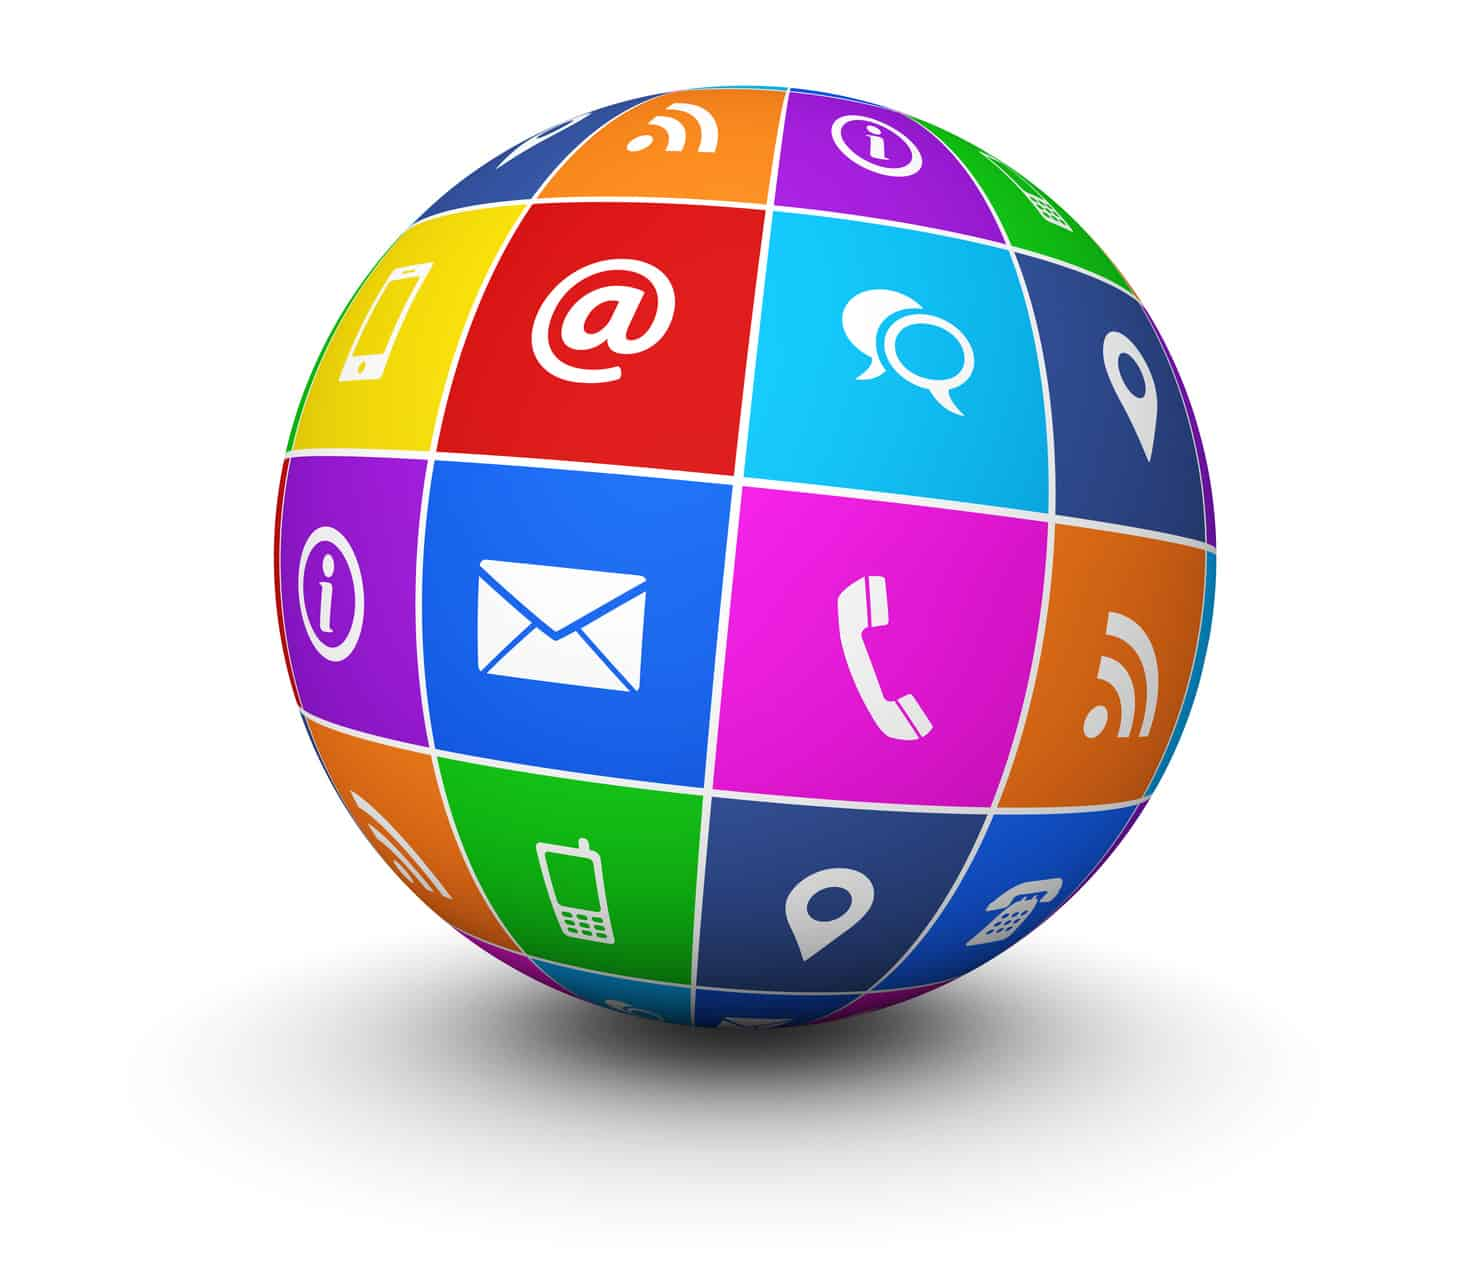 Website and Internet contact us web icons and symbol on a colorful globe for blog and online business illustration on white background. E-MAIL MARKETING